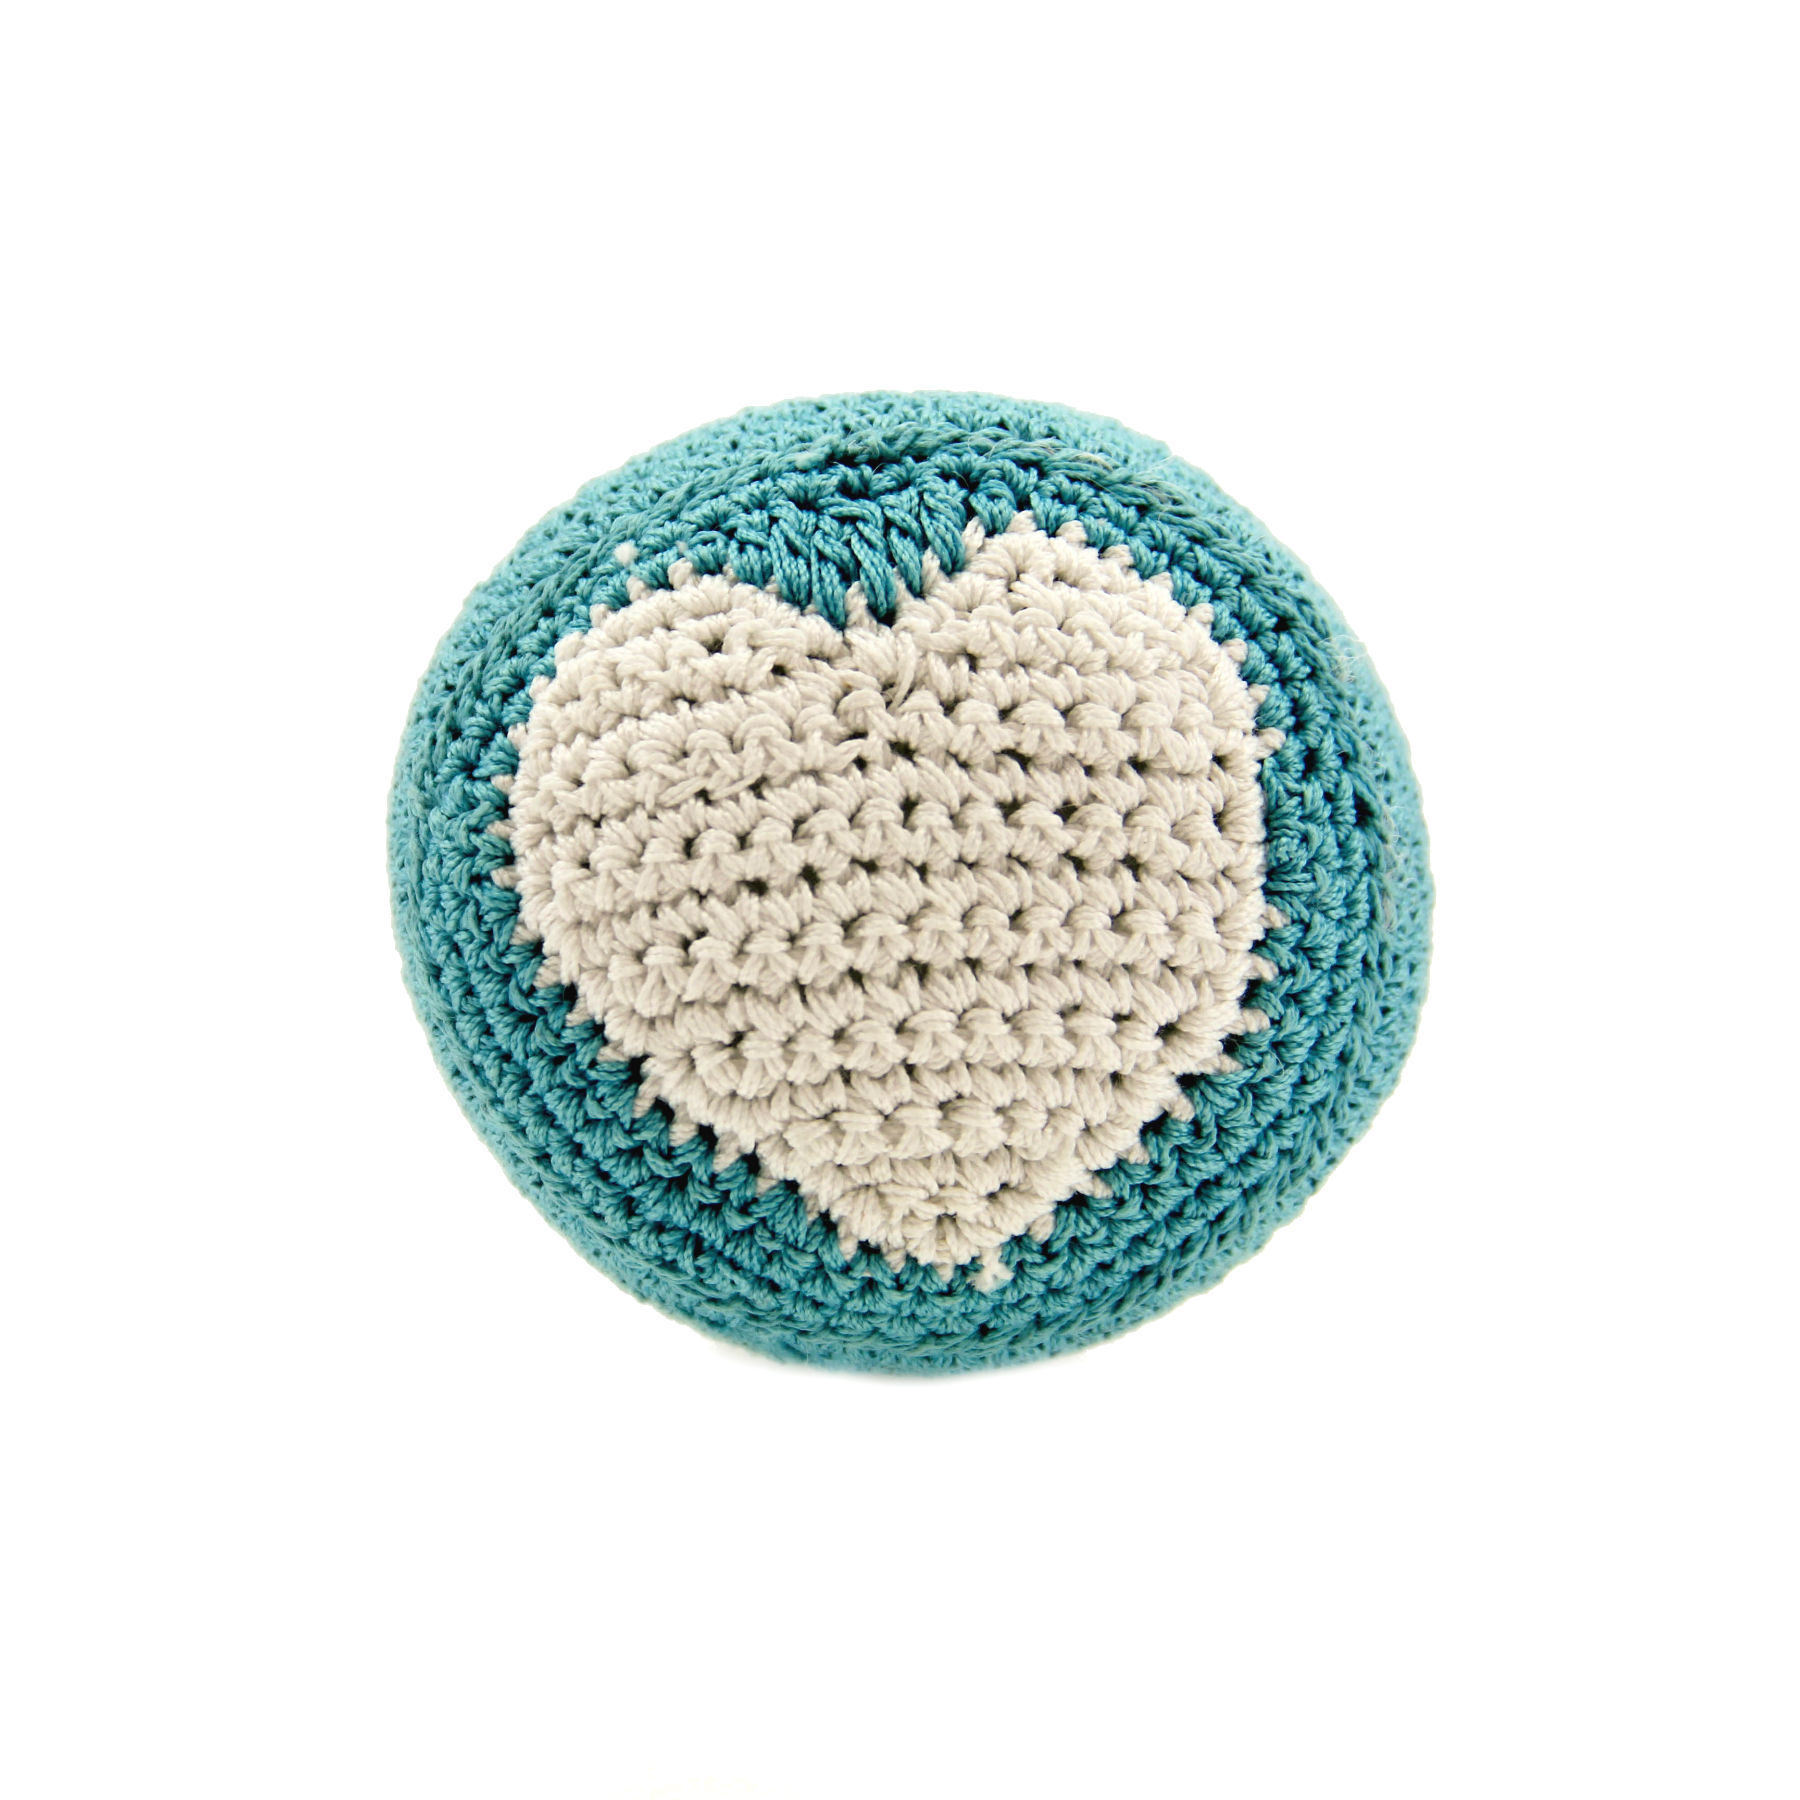 Organic Cotton Crochet Dog Toy by Hip Doggie - Blue Heart Ball